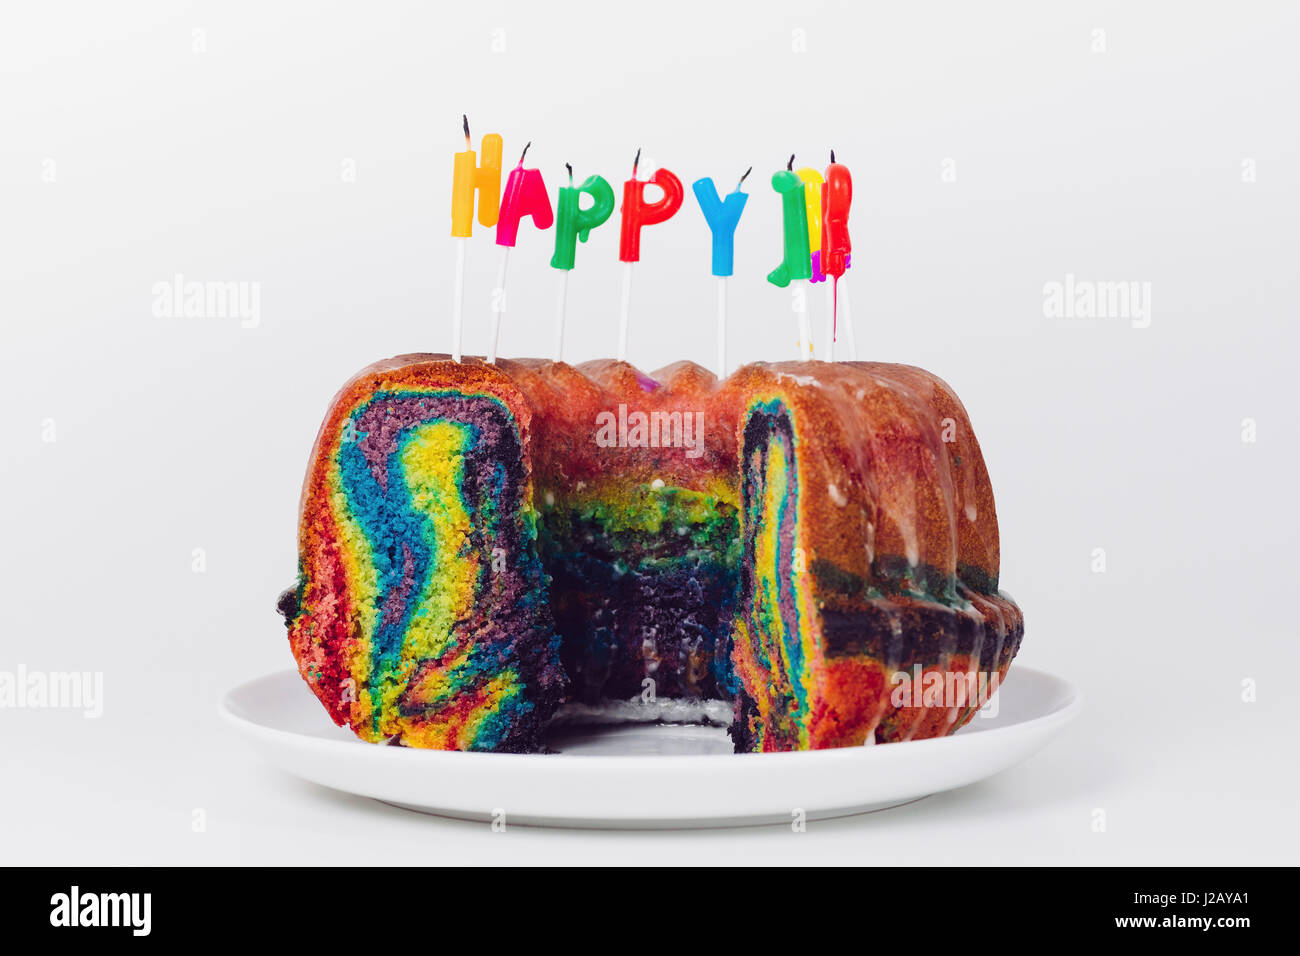 Close Up Of Birthday Candles On Rainbow Cake In Plate Against White Background